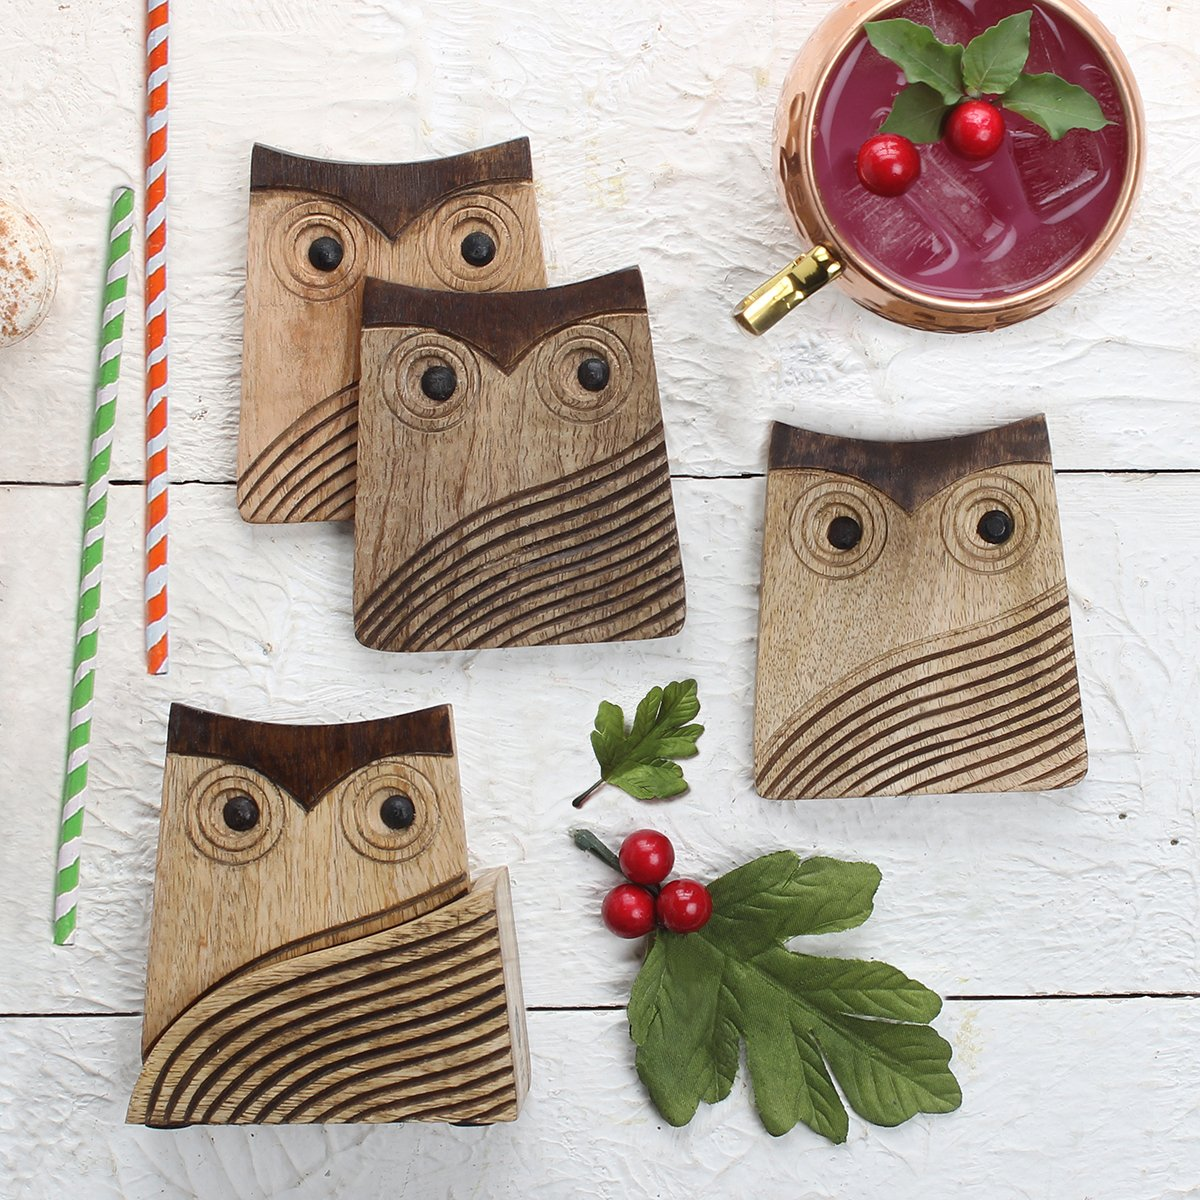 storeindya, Set of 4 with Holder- Wooden Coasters for Drinks Absorbent - Coaster Set with Holder - Eco-Friendly Protects Furniture from Water Stains & Damages (Owl Collection)